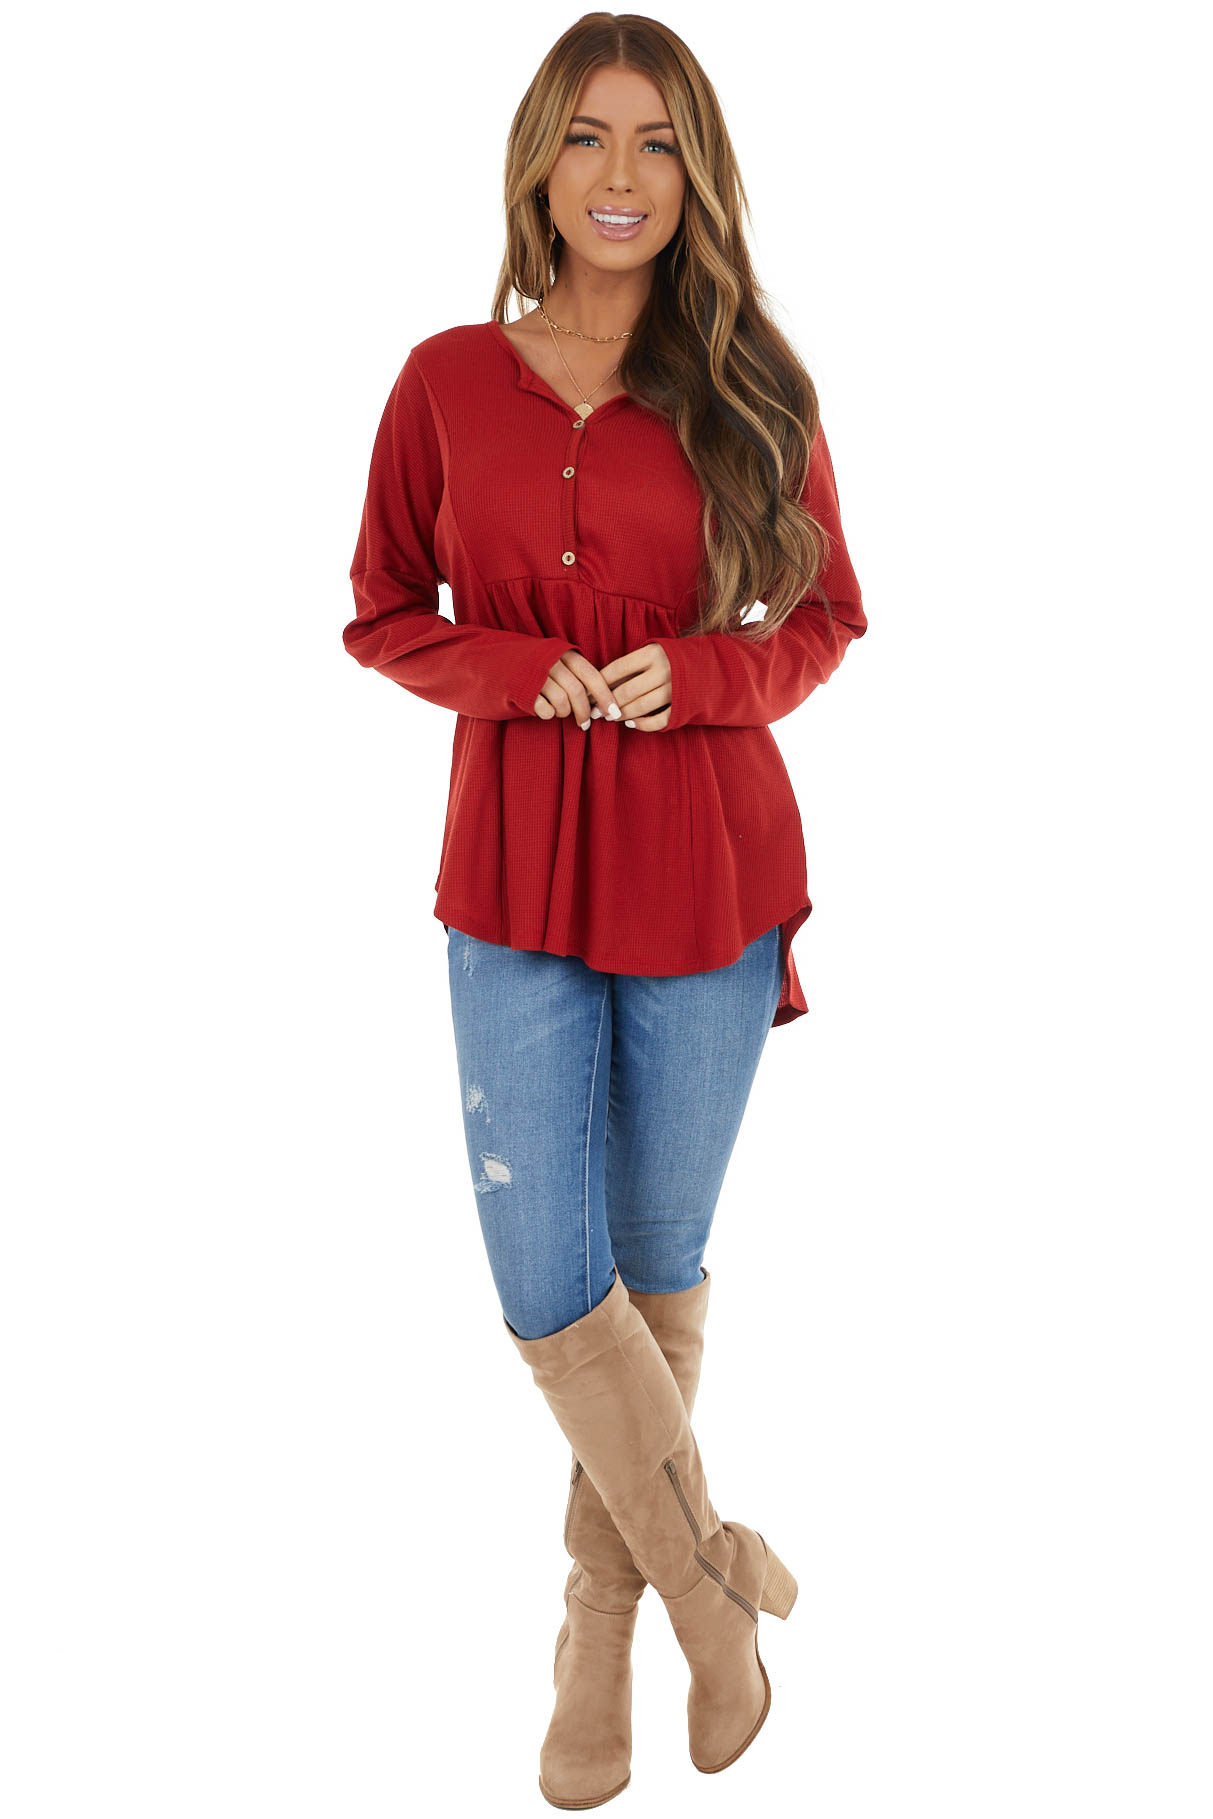 Cherry Red Thermal Knit Top with Buttons and Ruffle Detail